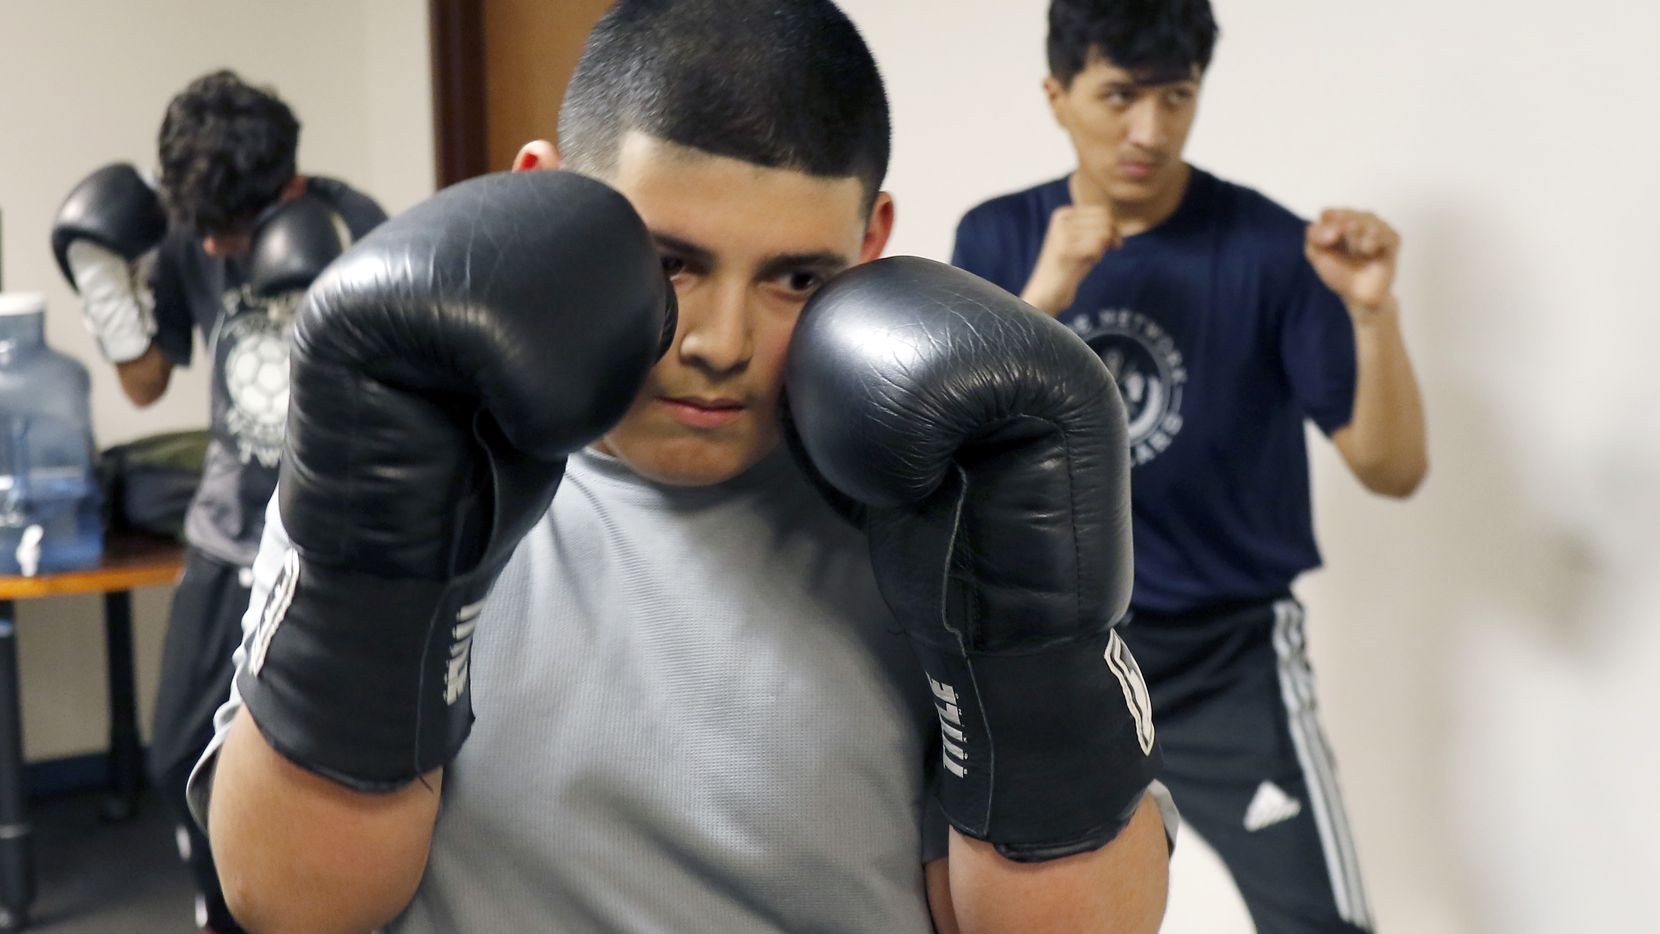 Daniel Abundis,12, is taking boxing classes to learn how to protect himself at the new physical location of nonprofit Puede Network in Oak Cliff, Texas on Thursday, December 12, 2019. The new location has a boxing and classroom space to use. For years, the group has met at the founder's Adan Gonzalez's childhood home and city parks, but a benefactor has loaned them a building to use free of rent.